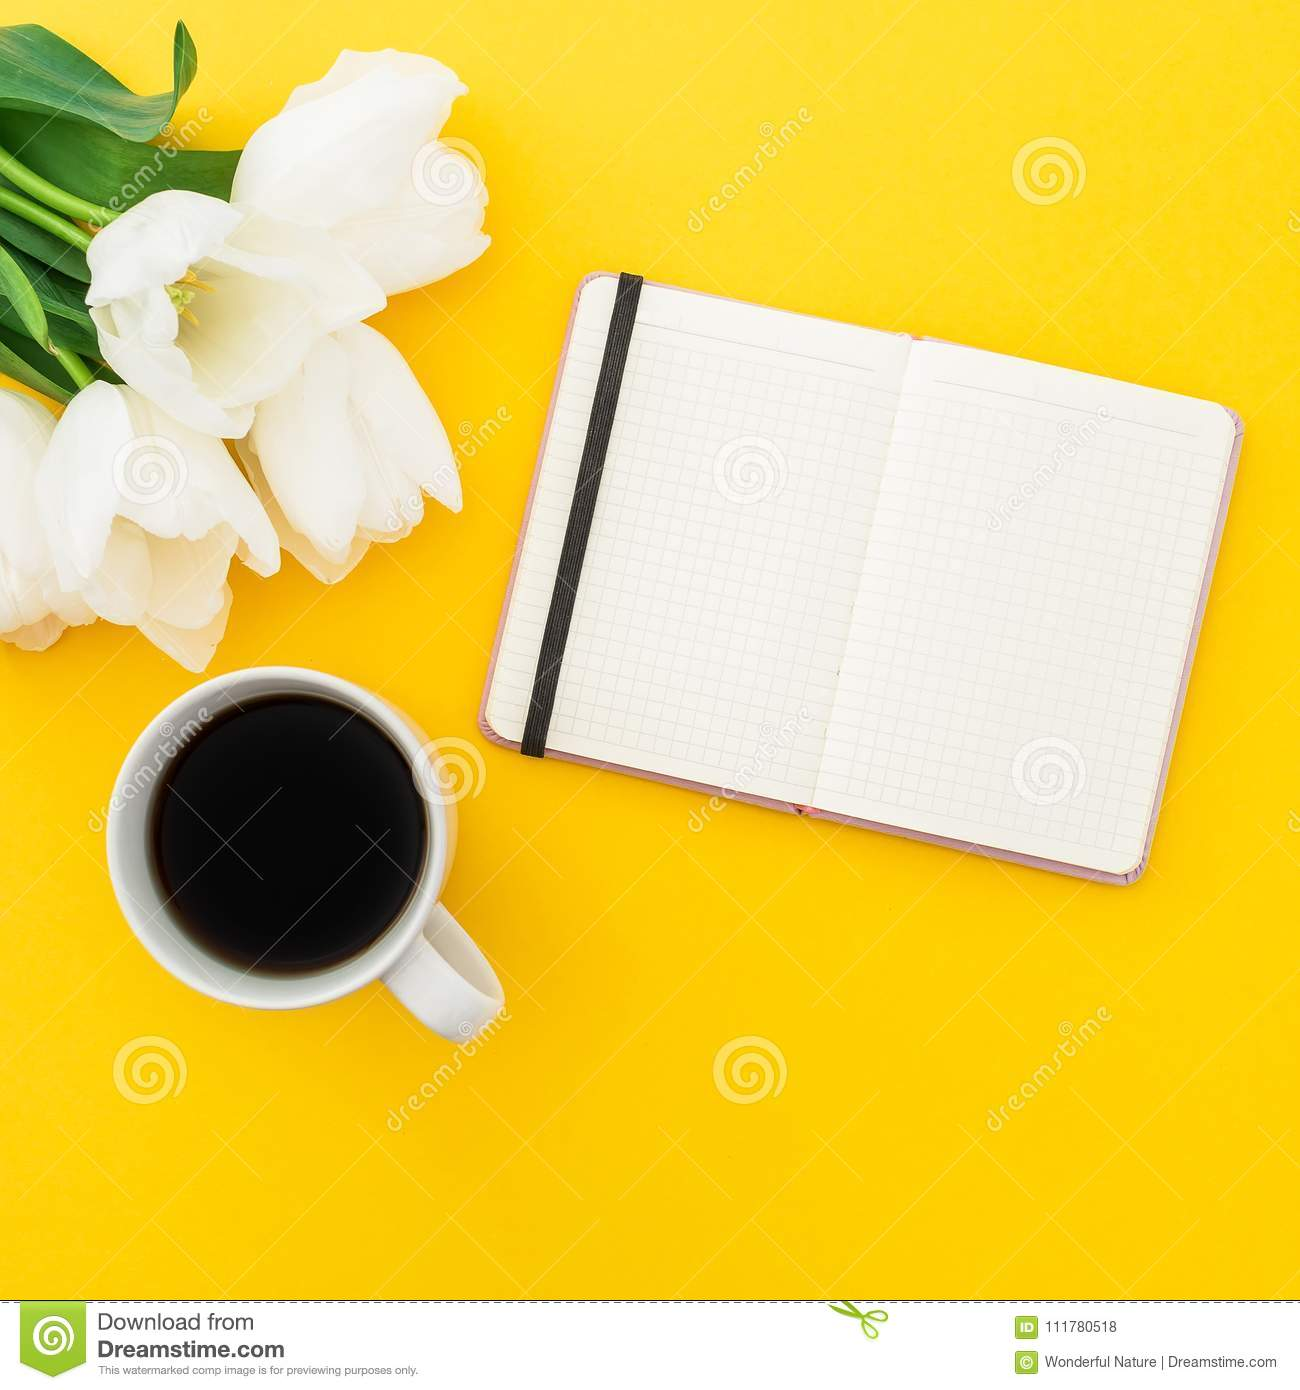 White tulips, notebook with mug of coffee on yellow background. Flat lay, top view.